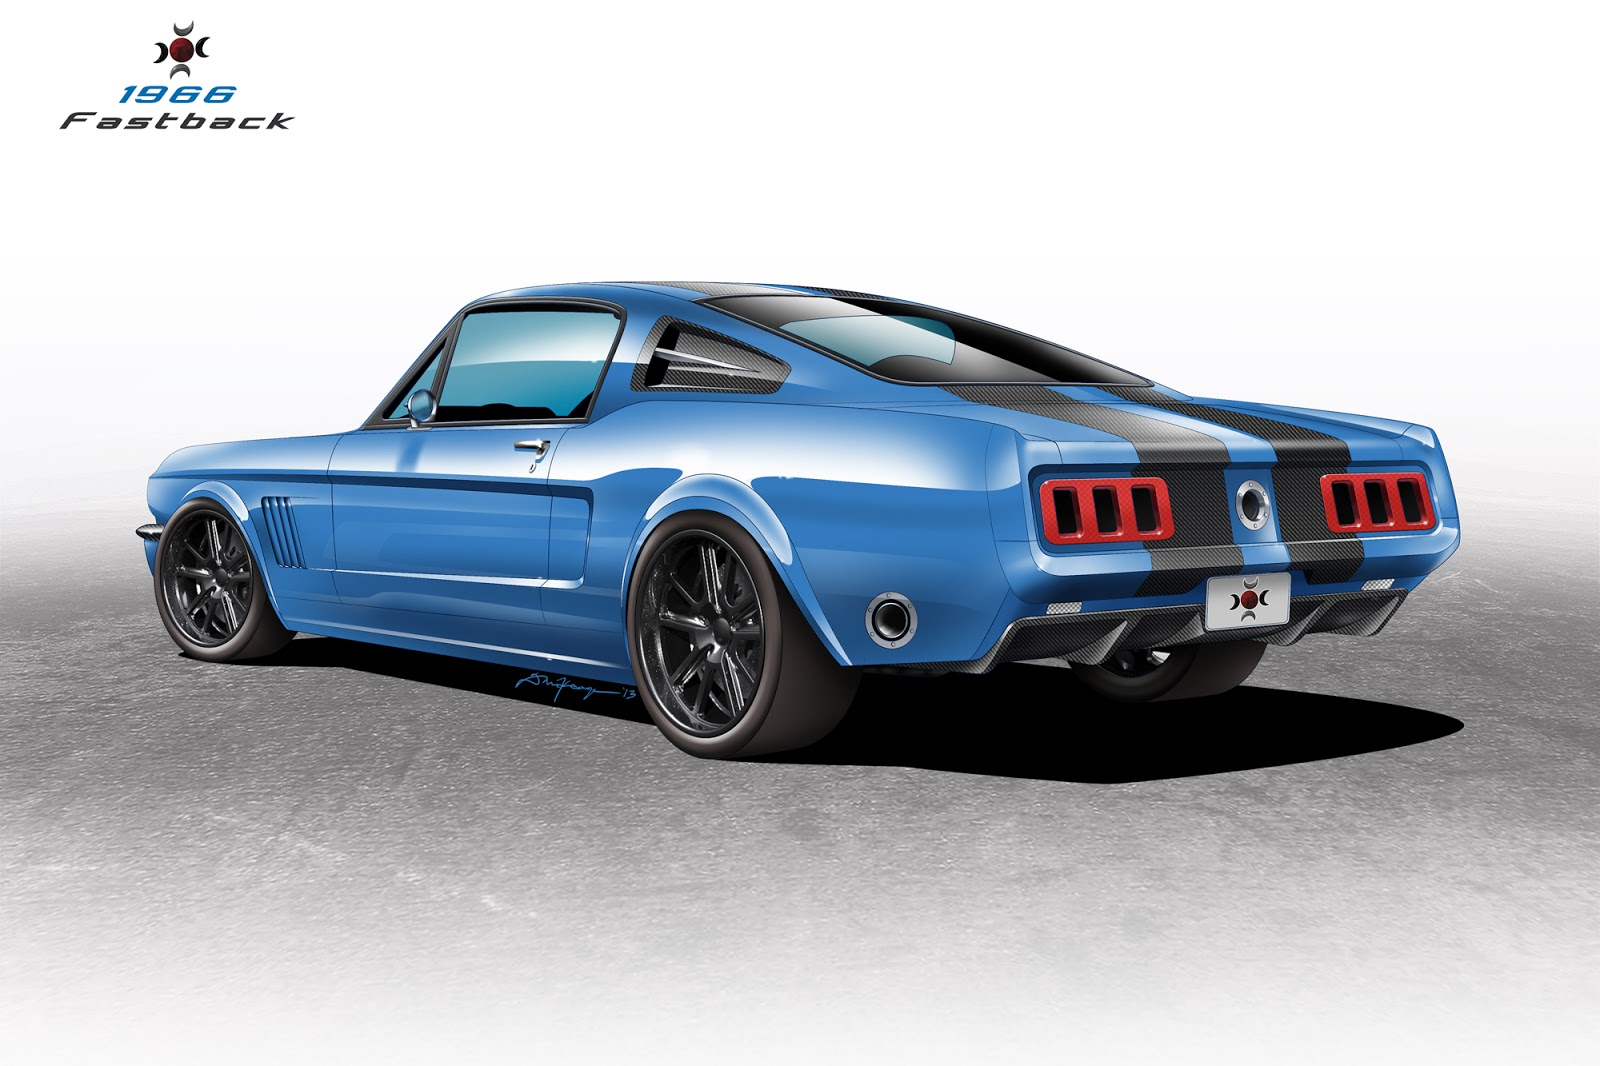 Darren McKeage: Customs Factory Custom Mustang